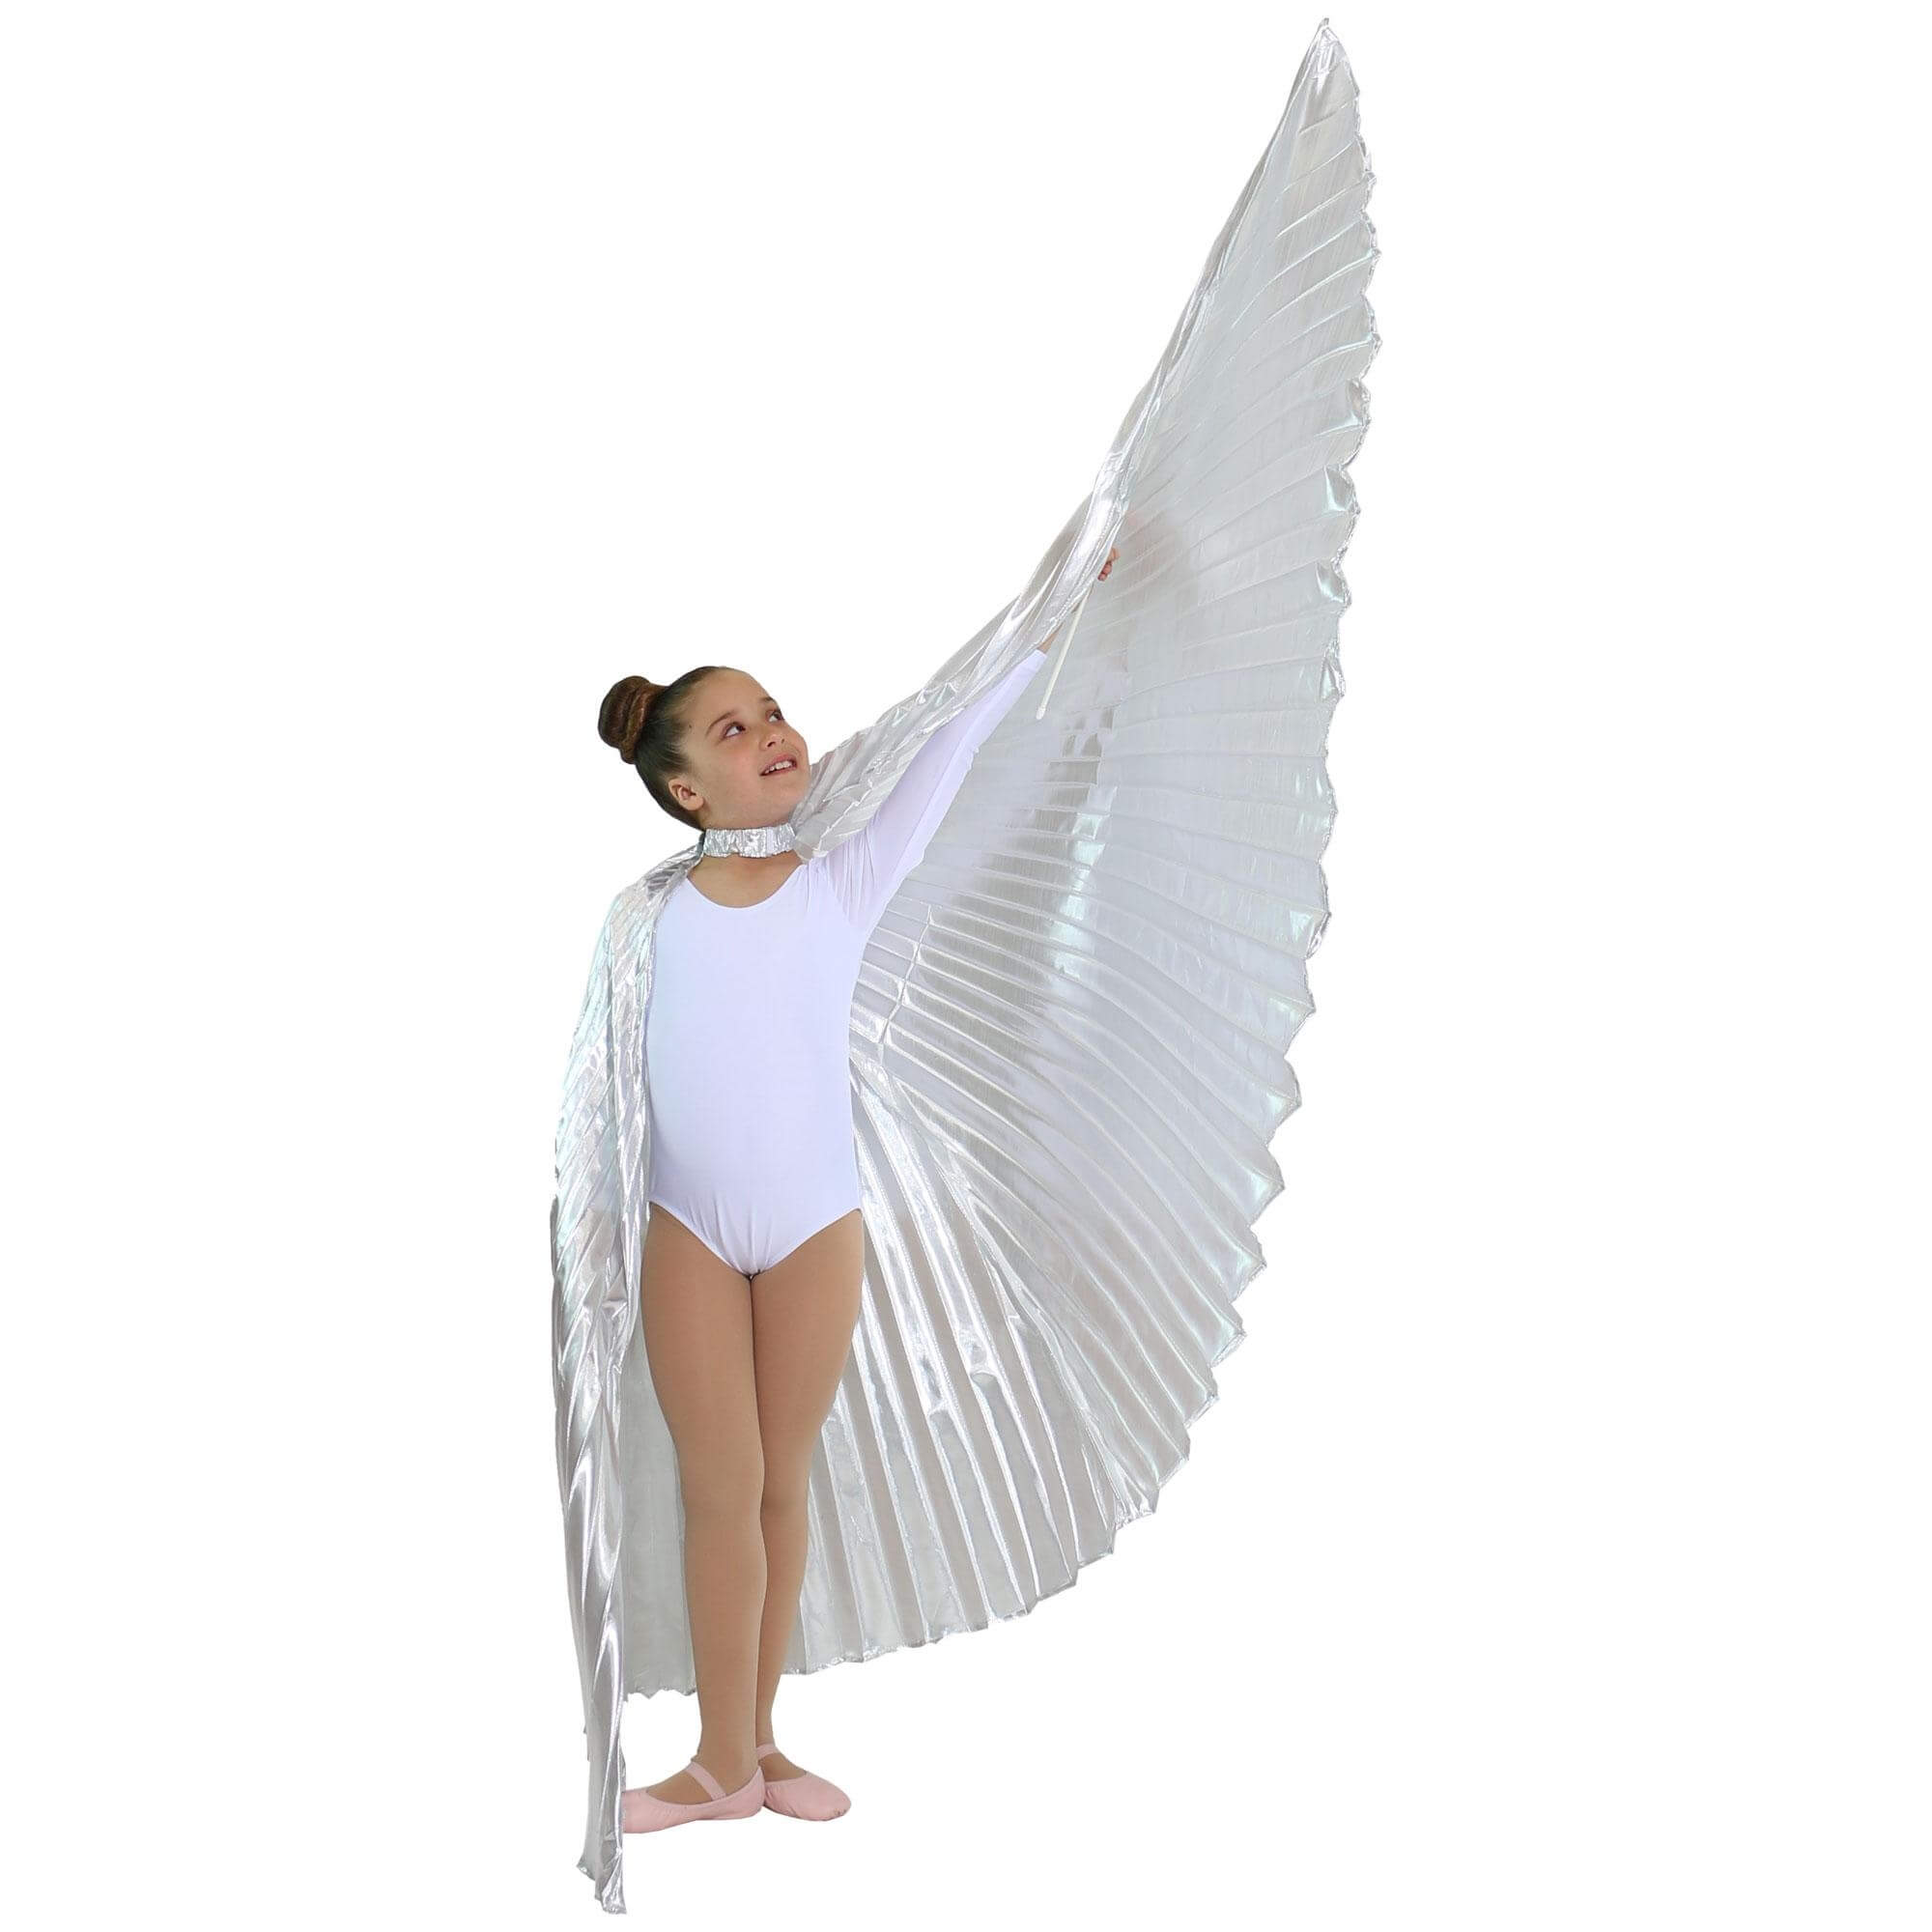 iridescent white worship angel wingiridescent white worship angel wing click image to close